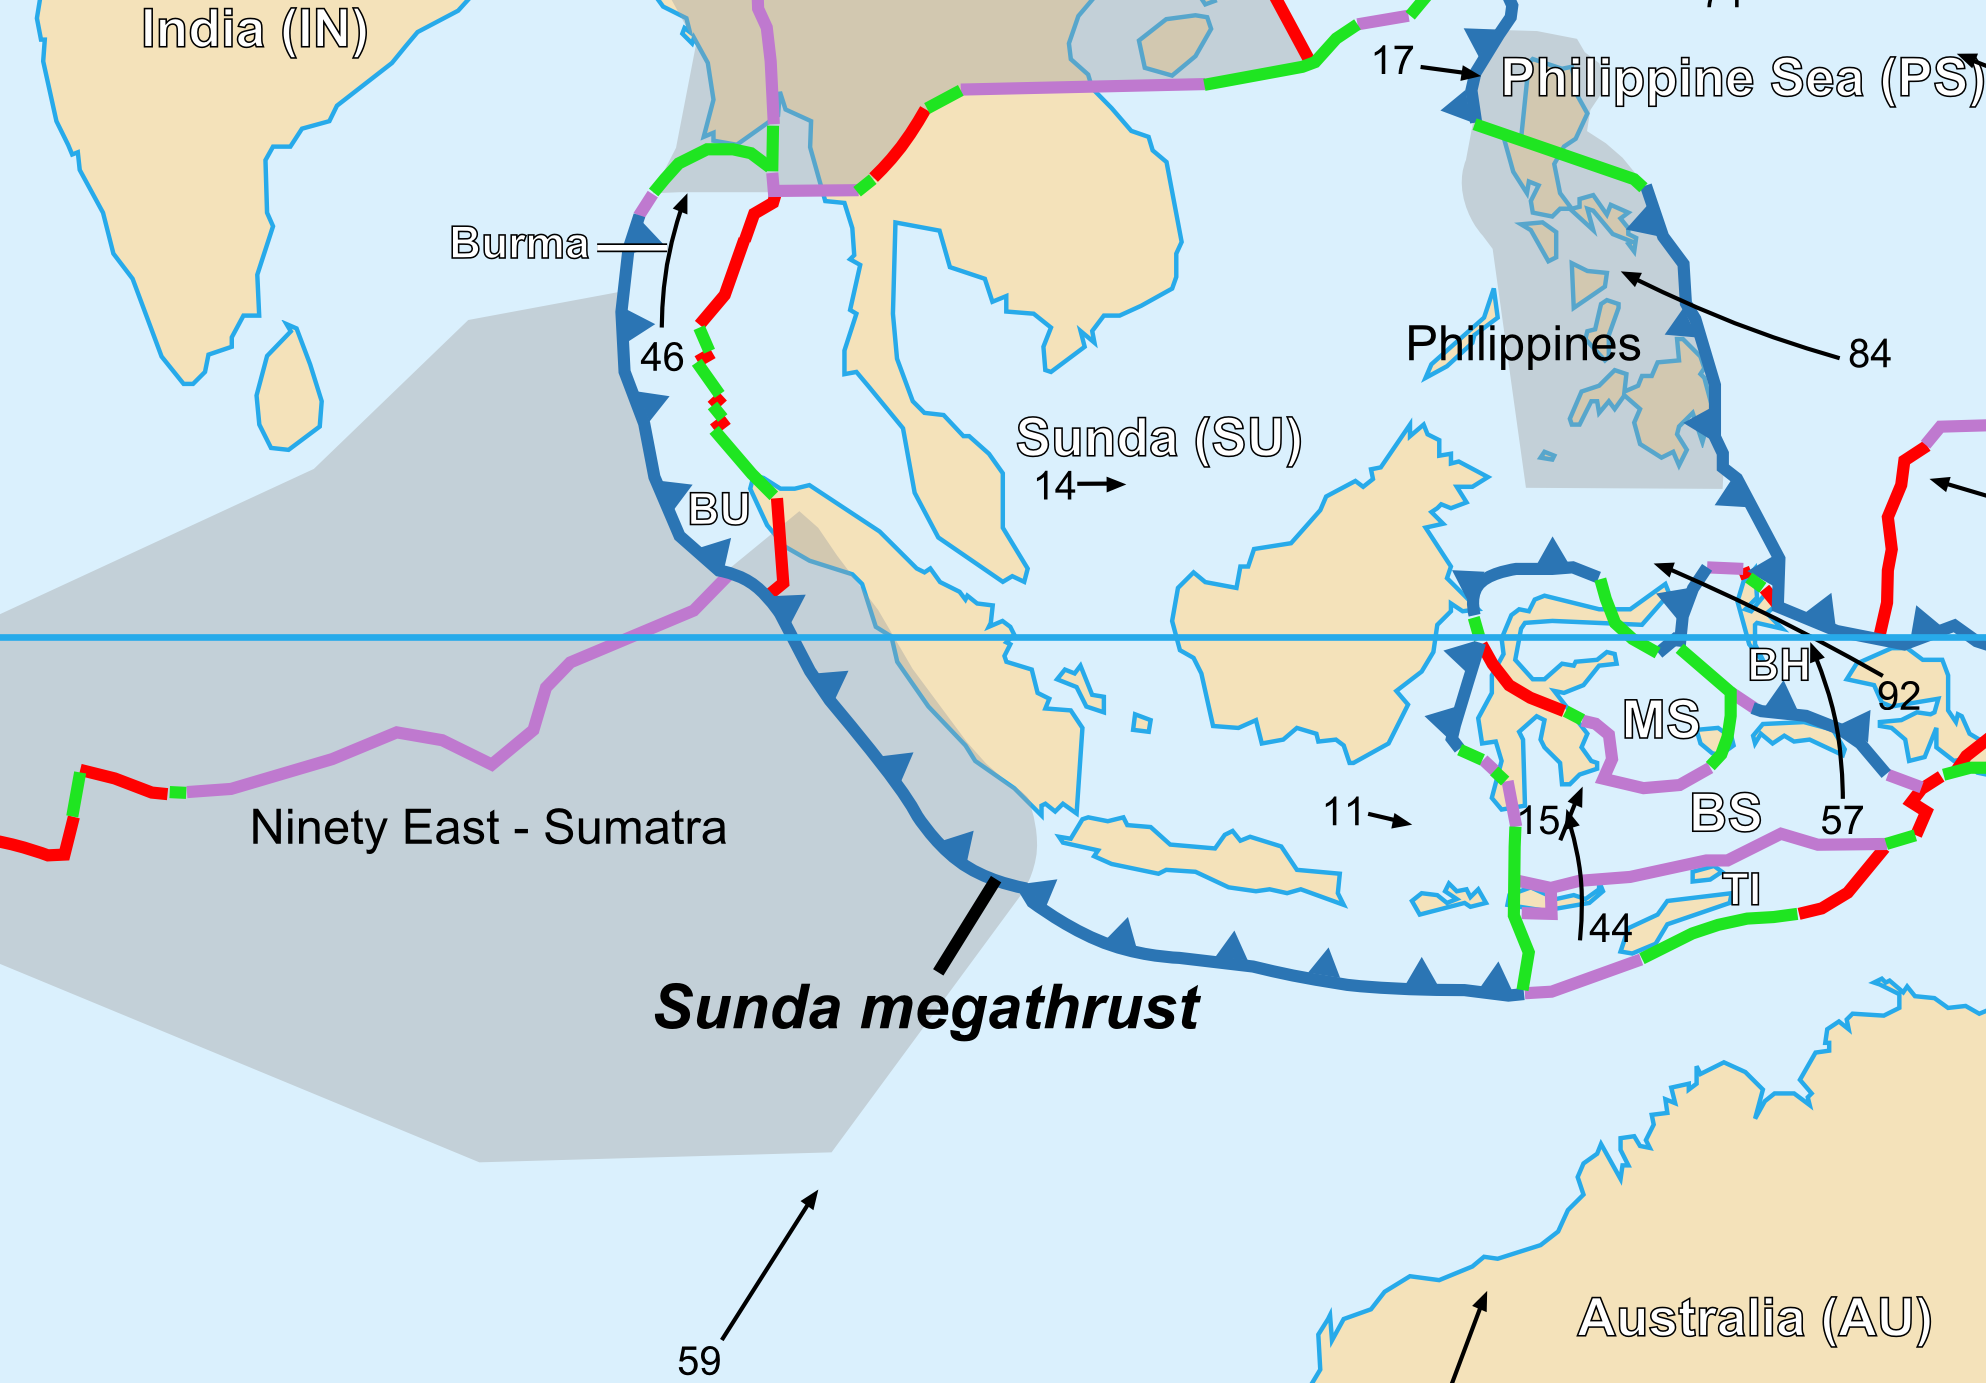 http://upload.wikimedia.org/wikipedia/commons/4/45/Plate_setting_Sunda_megathrust.png